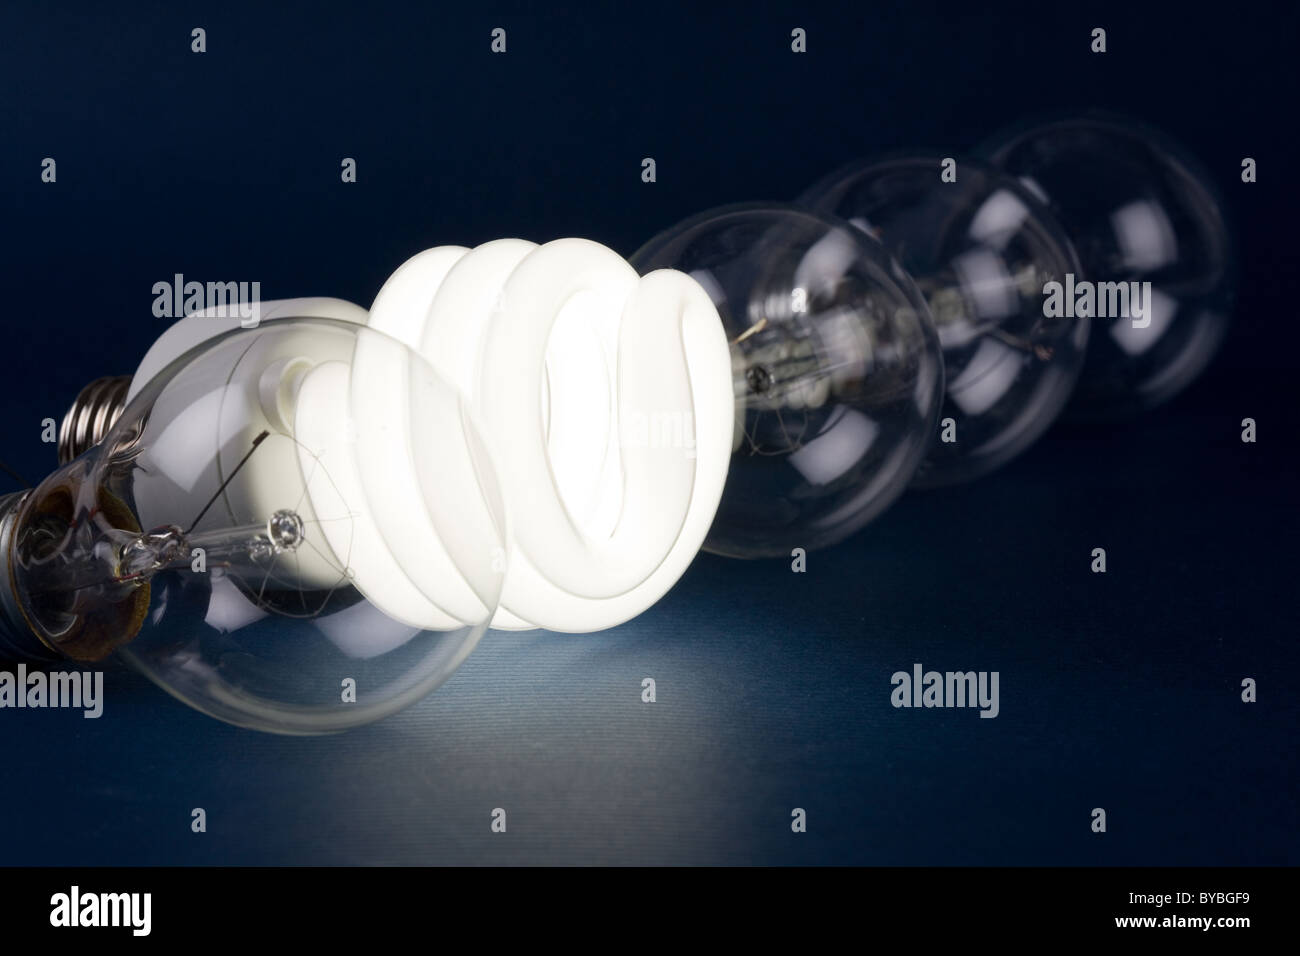 Compact Fluorescent Light bulb clsoe up - Stock Image